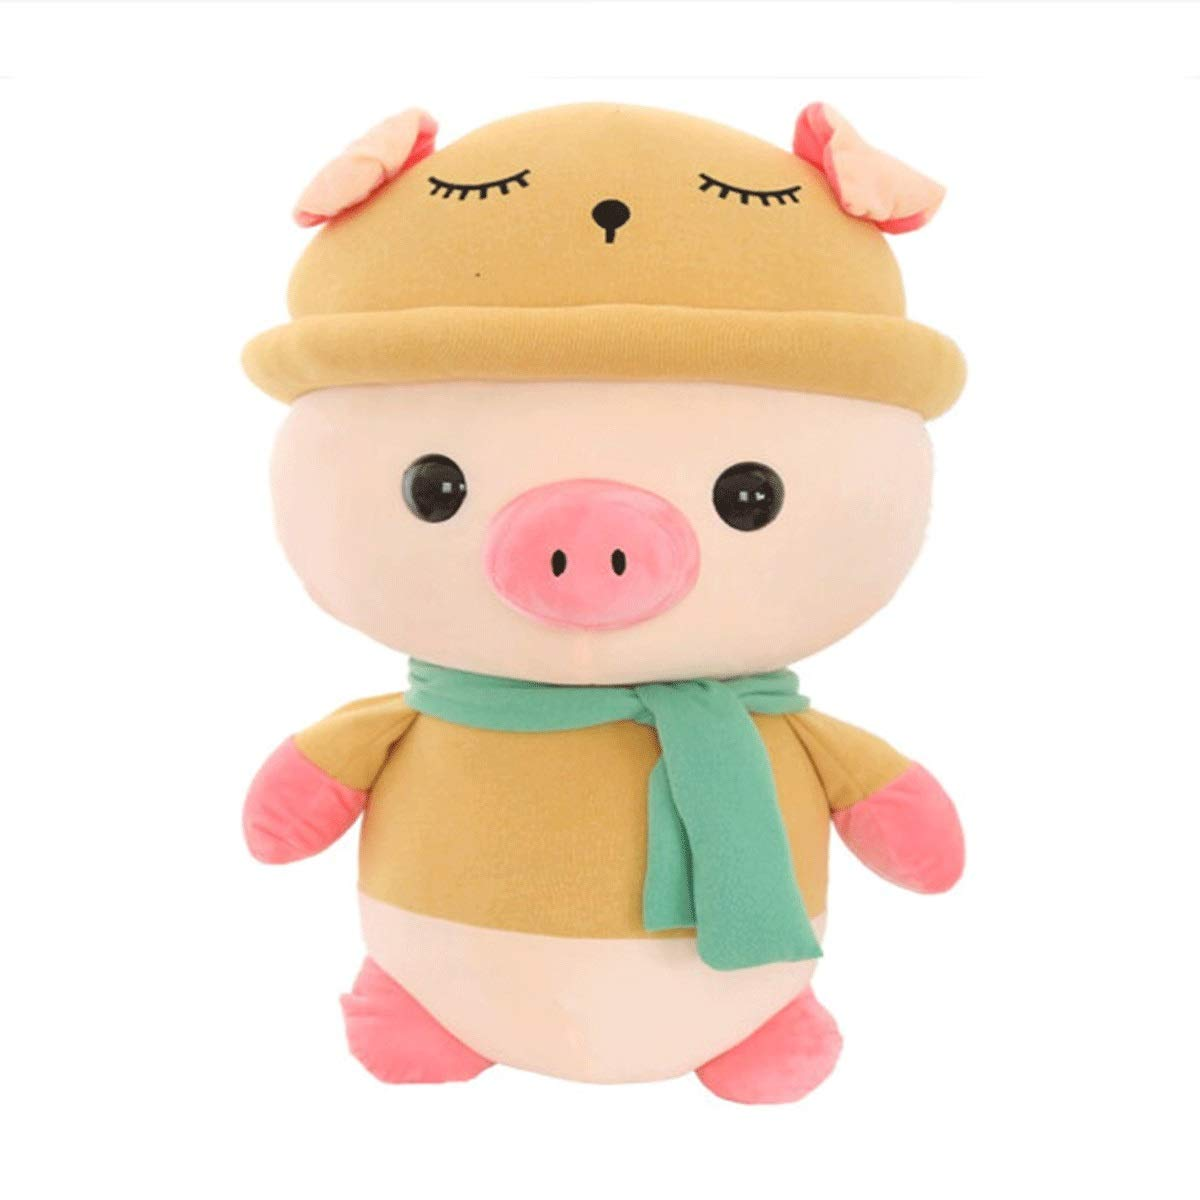 Yellow 35cm Yellow 35cm 8haowenju Plush Toys, Cute Plush Toy Pigs, Doll Sleeping Pillows, Birthday Gifts Festival Gifts, Pig Year Mascots, Annual Gifts, Multiple colors and Sizes, Best Gifts Latest Models